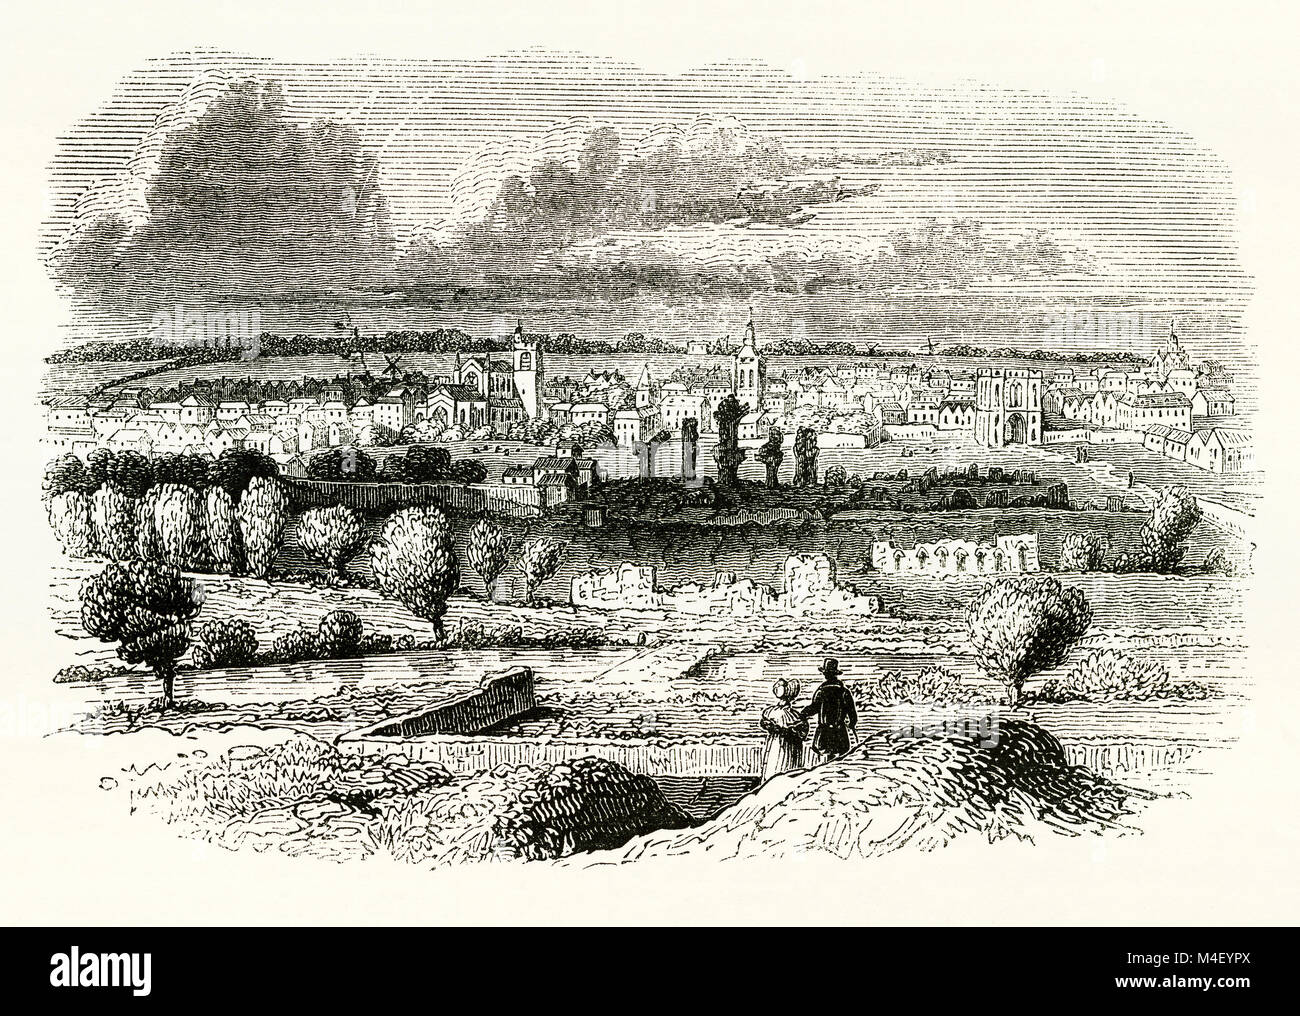 An old engraving of Bury St Edmunds, a market town in west Suffolk, England - in this view the River Lark is in - Stock Image